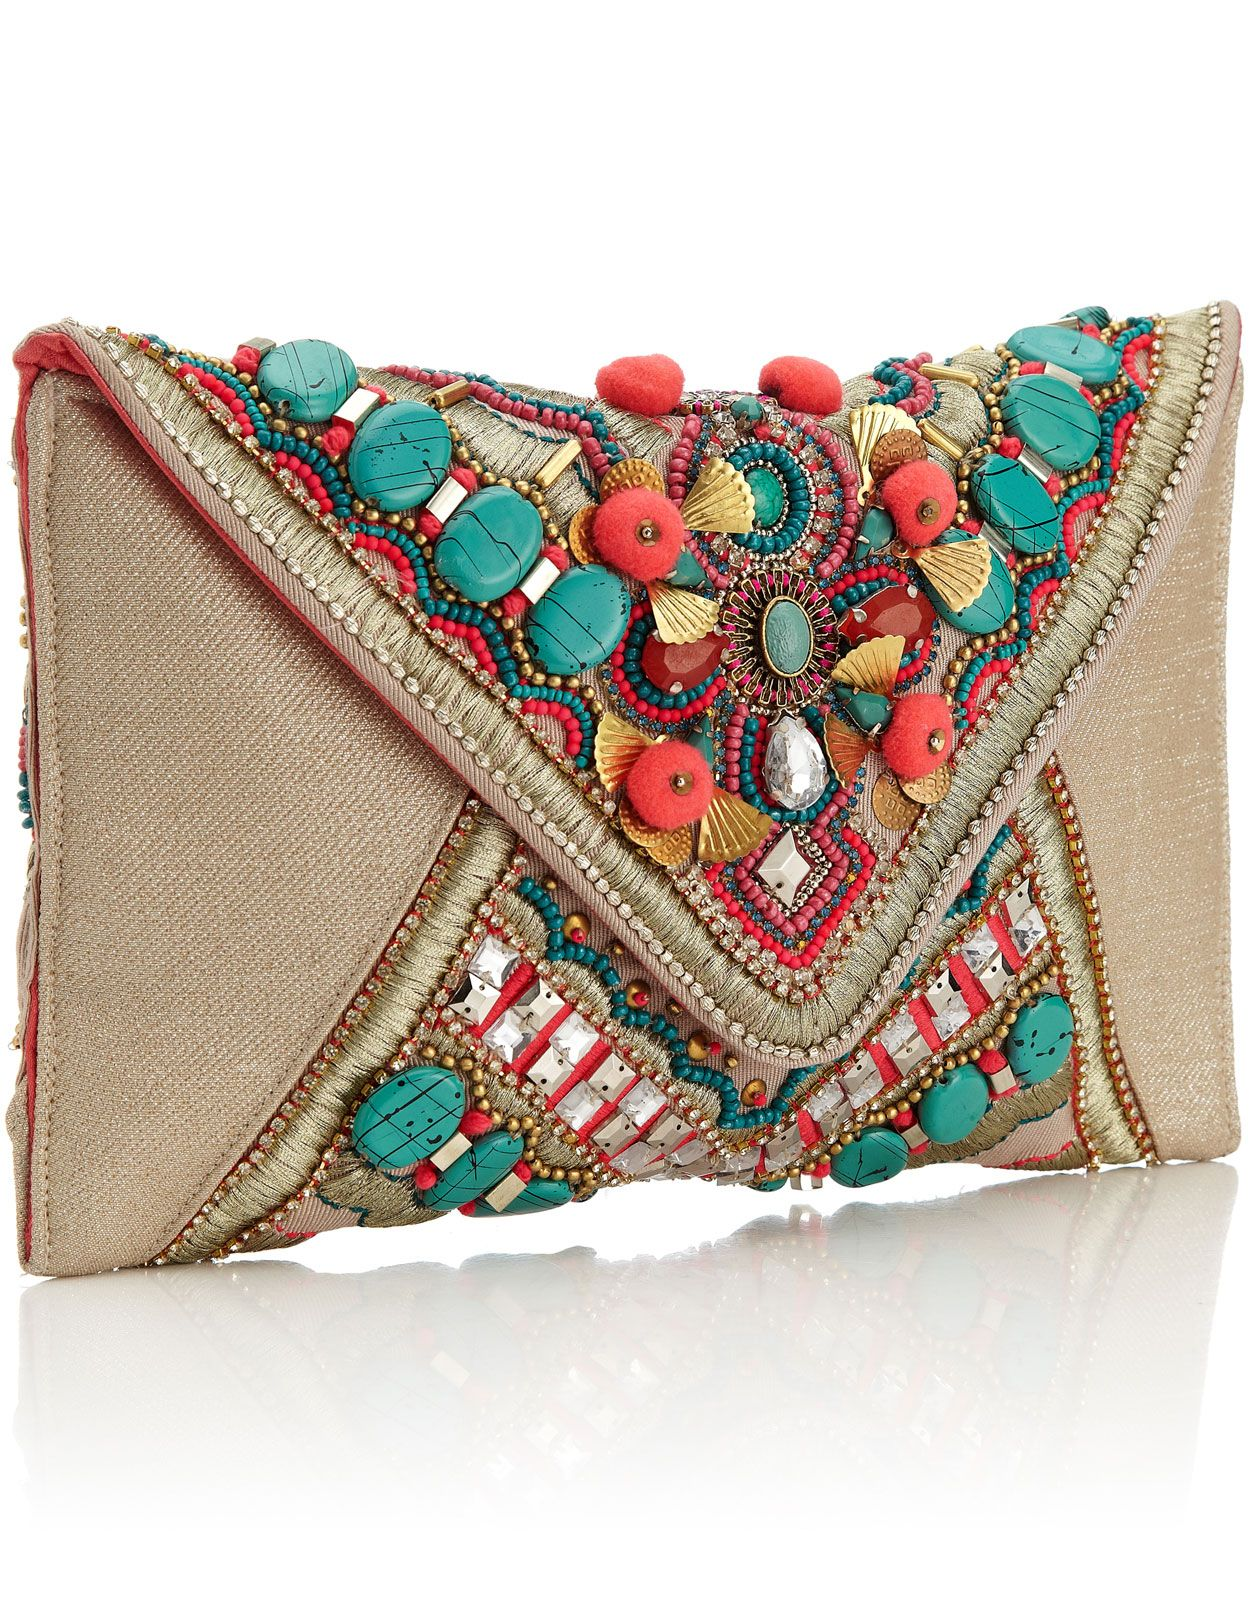 8146a660195b Gem Salinas Beaded Clutch 3892599900  88.00 Bright and fun embellished  envelope clutch with large turquoise beading, pink pom poms and bright  beading and ...